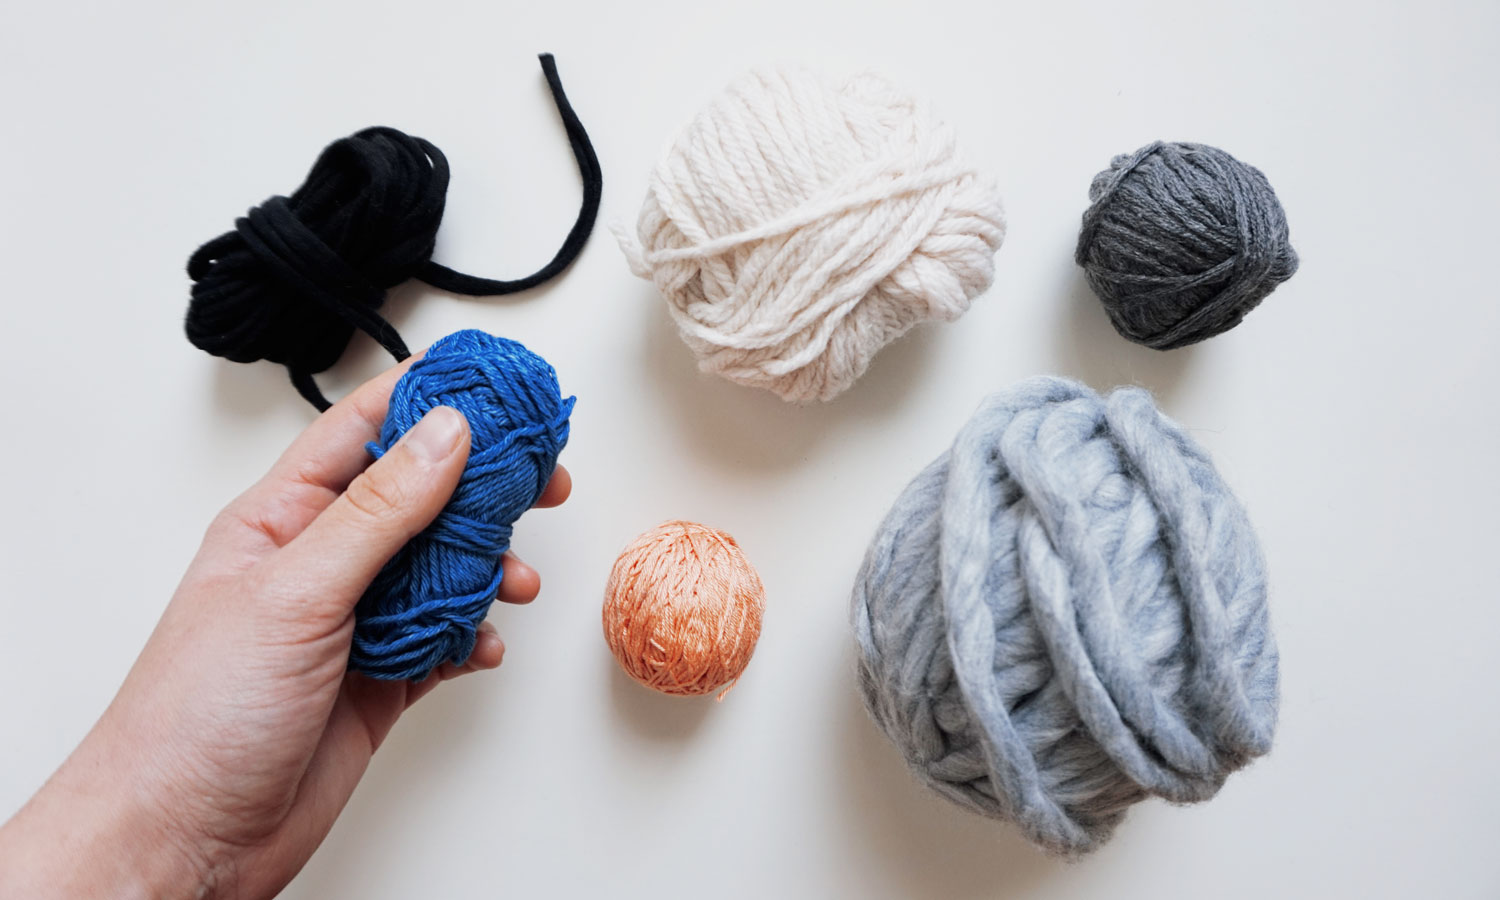 Image of 6 different color balls of yarn on a white brackground. A hand is holding one of them